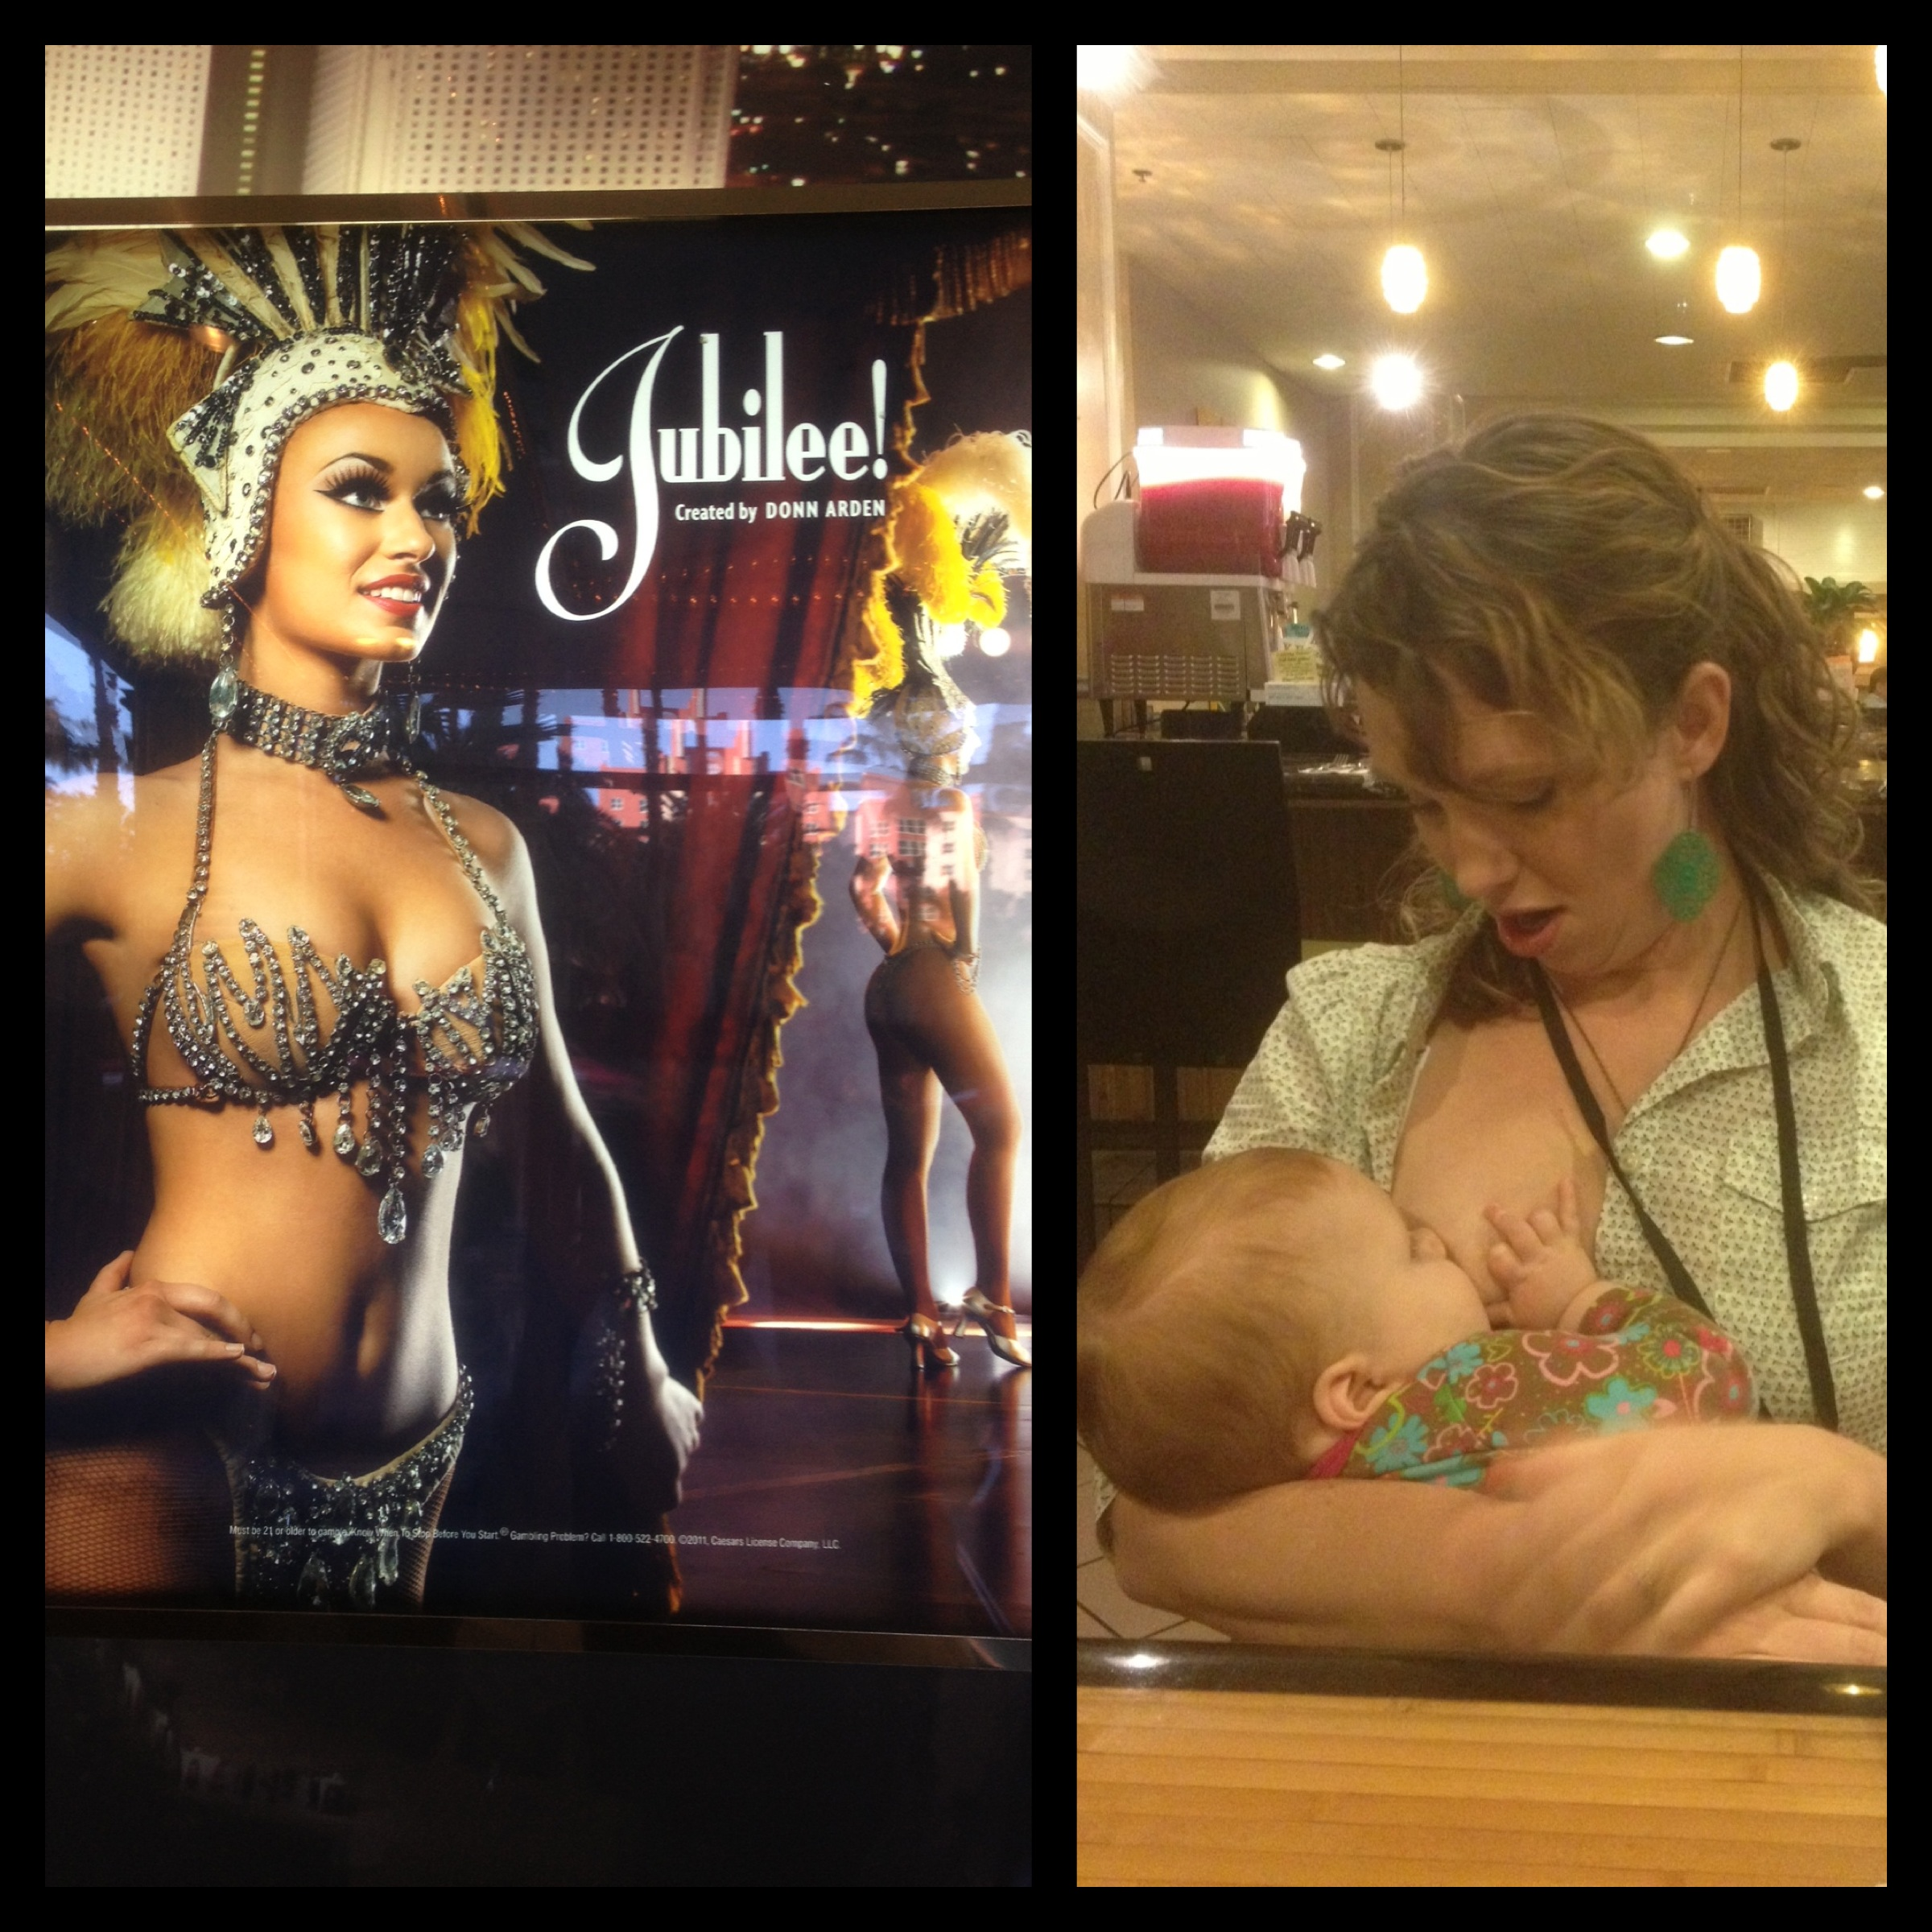 Vegas showgirl and breastfeeding mom